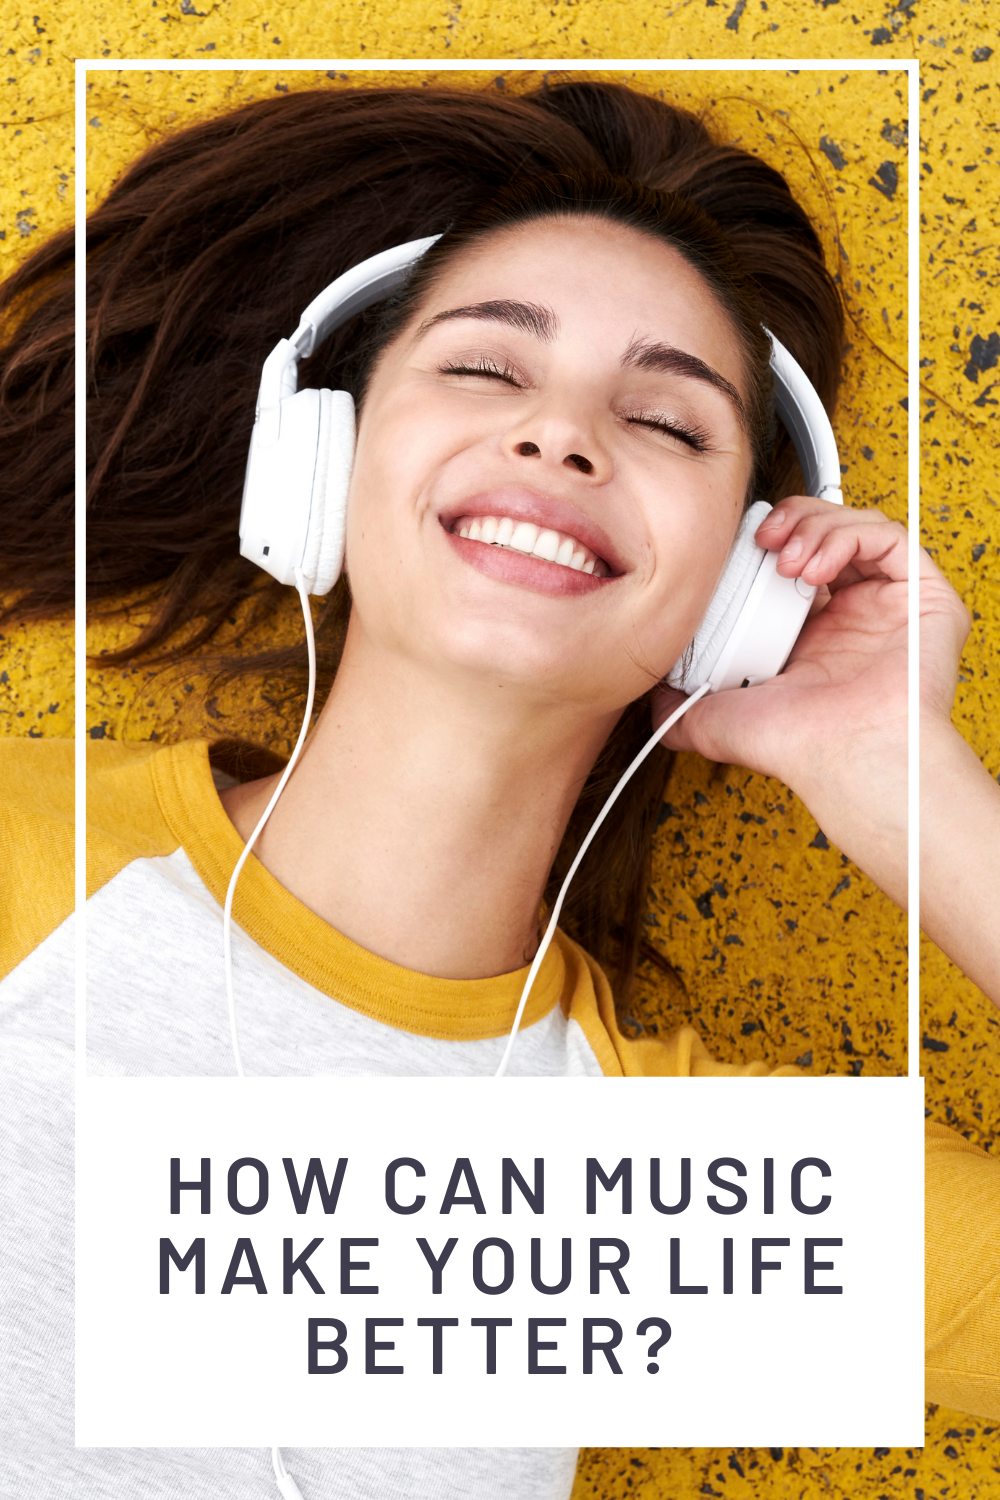 How Can Music Make Your Life Better?